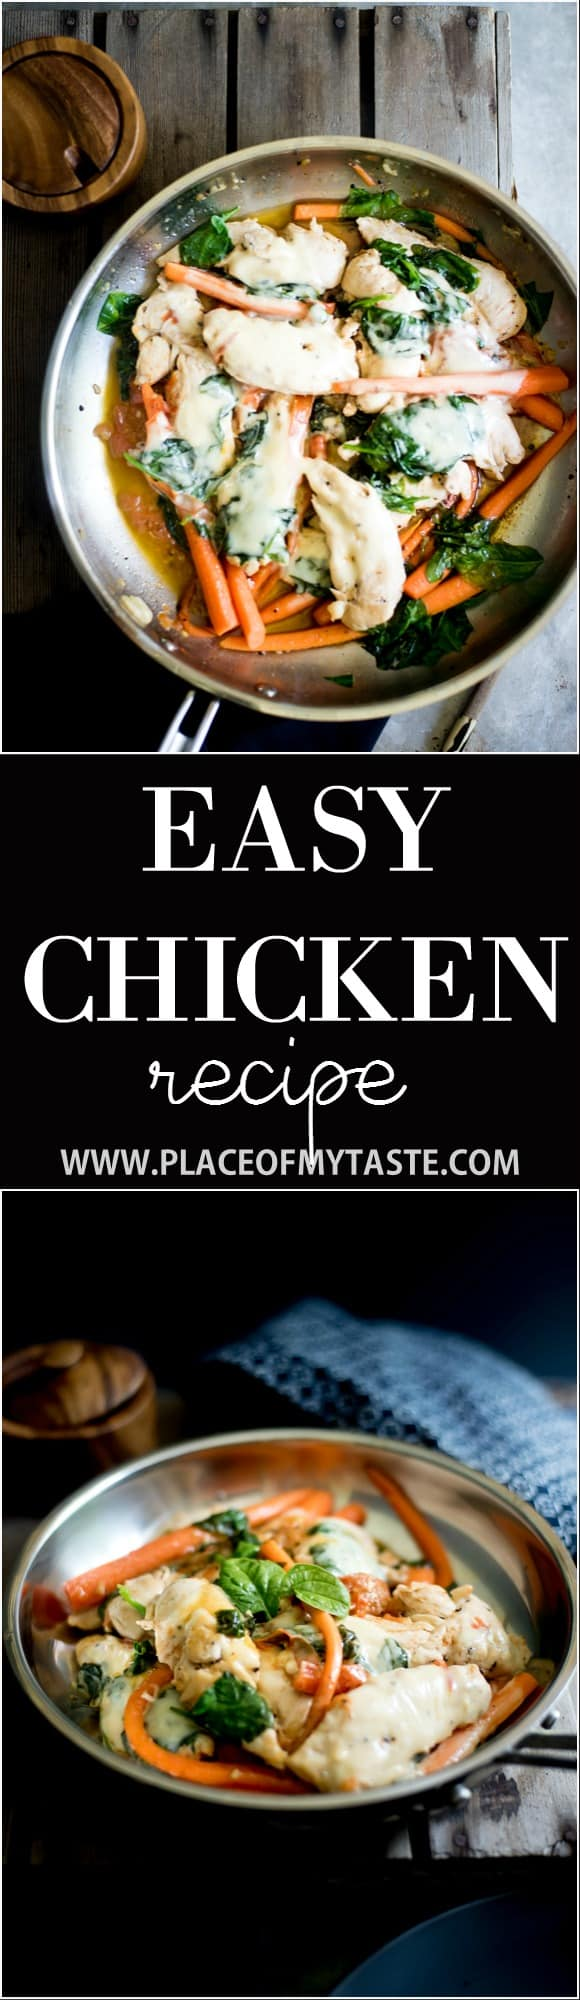 easy chicken recipe